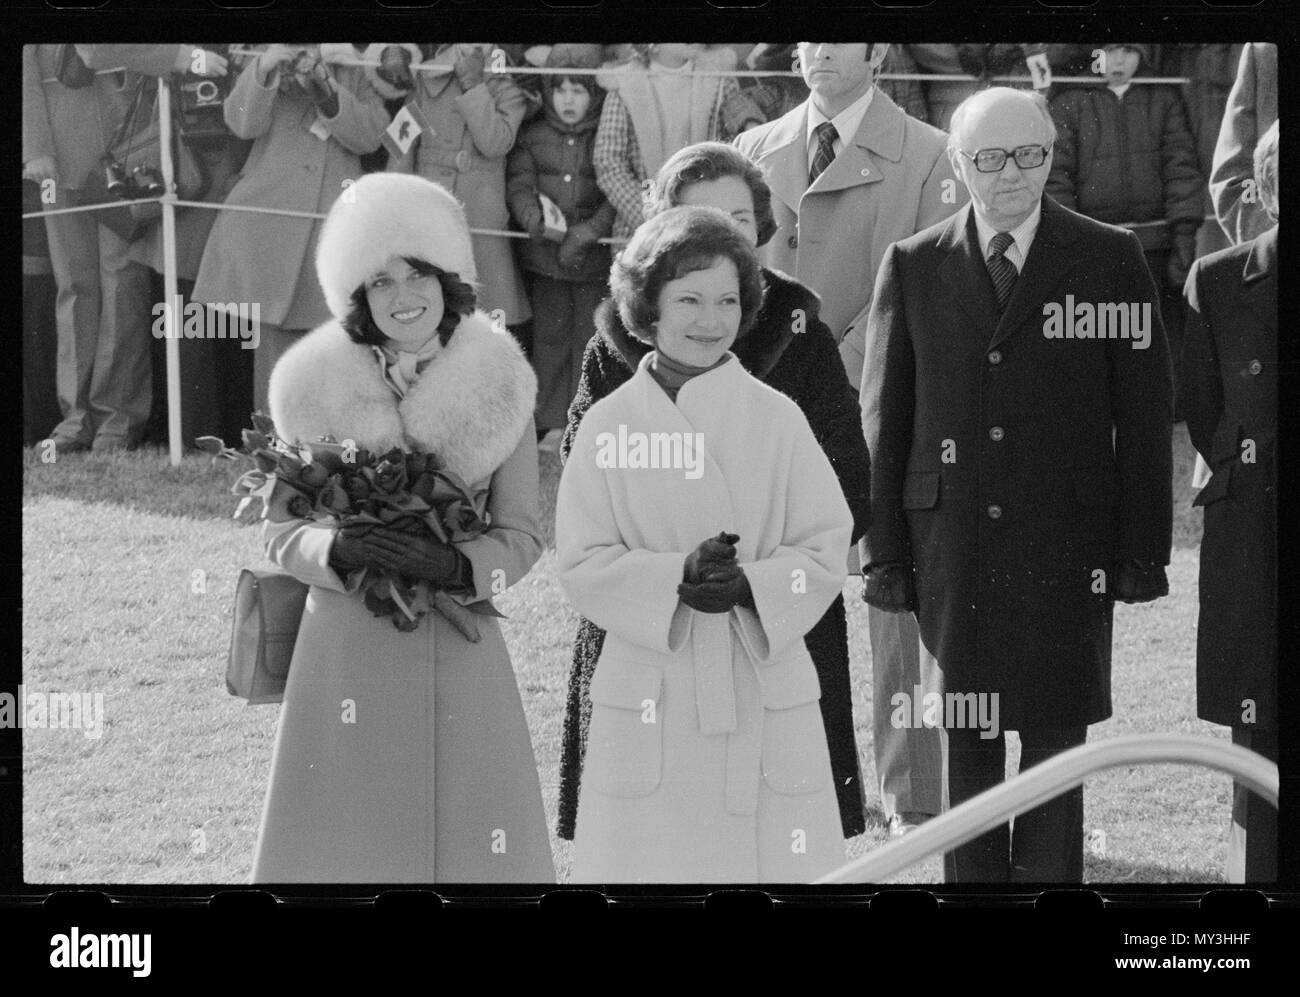 First Lady Rosalynn Carter (center) welcomes Margaret Trudeau (left), the wife of Canadian Prime Minister Pierre Trudeau, to the White House, Washington, DC, 2/21/1977. Photo by Thomas O'Halloran. Stock Photo